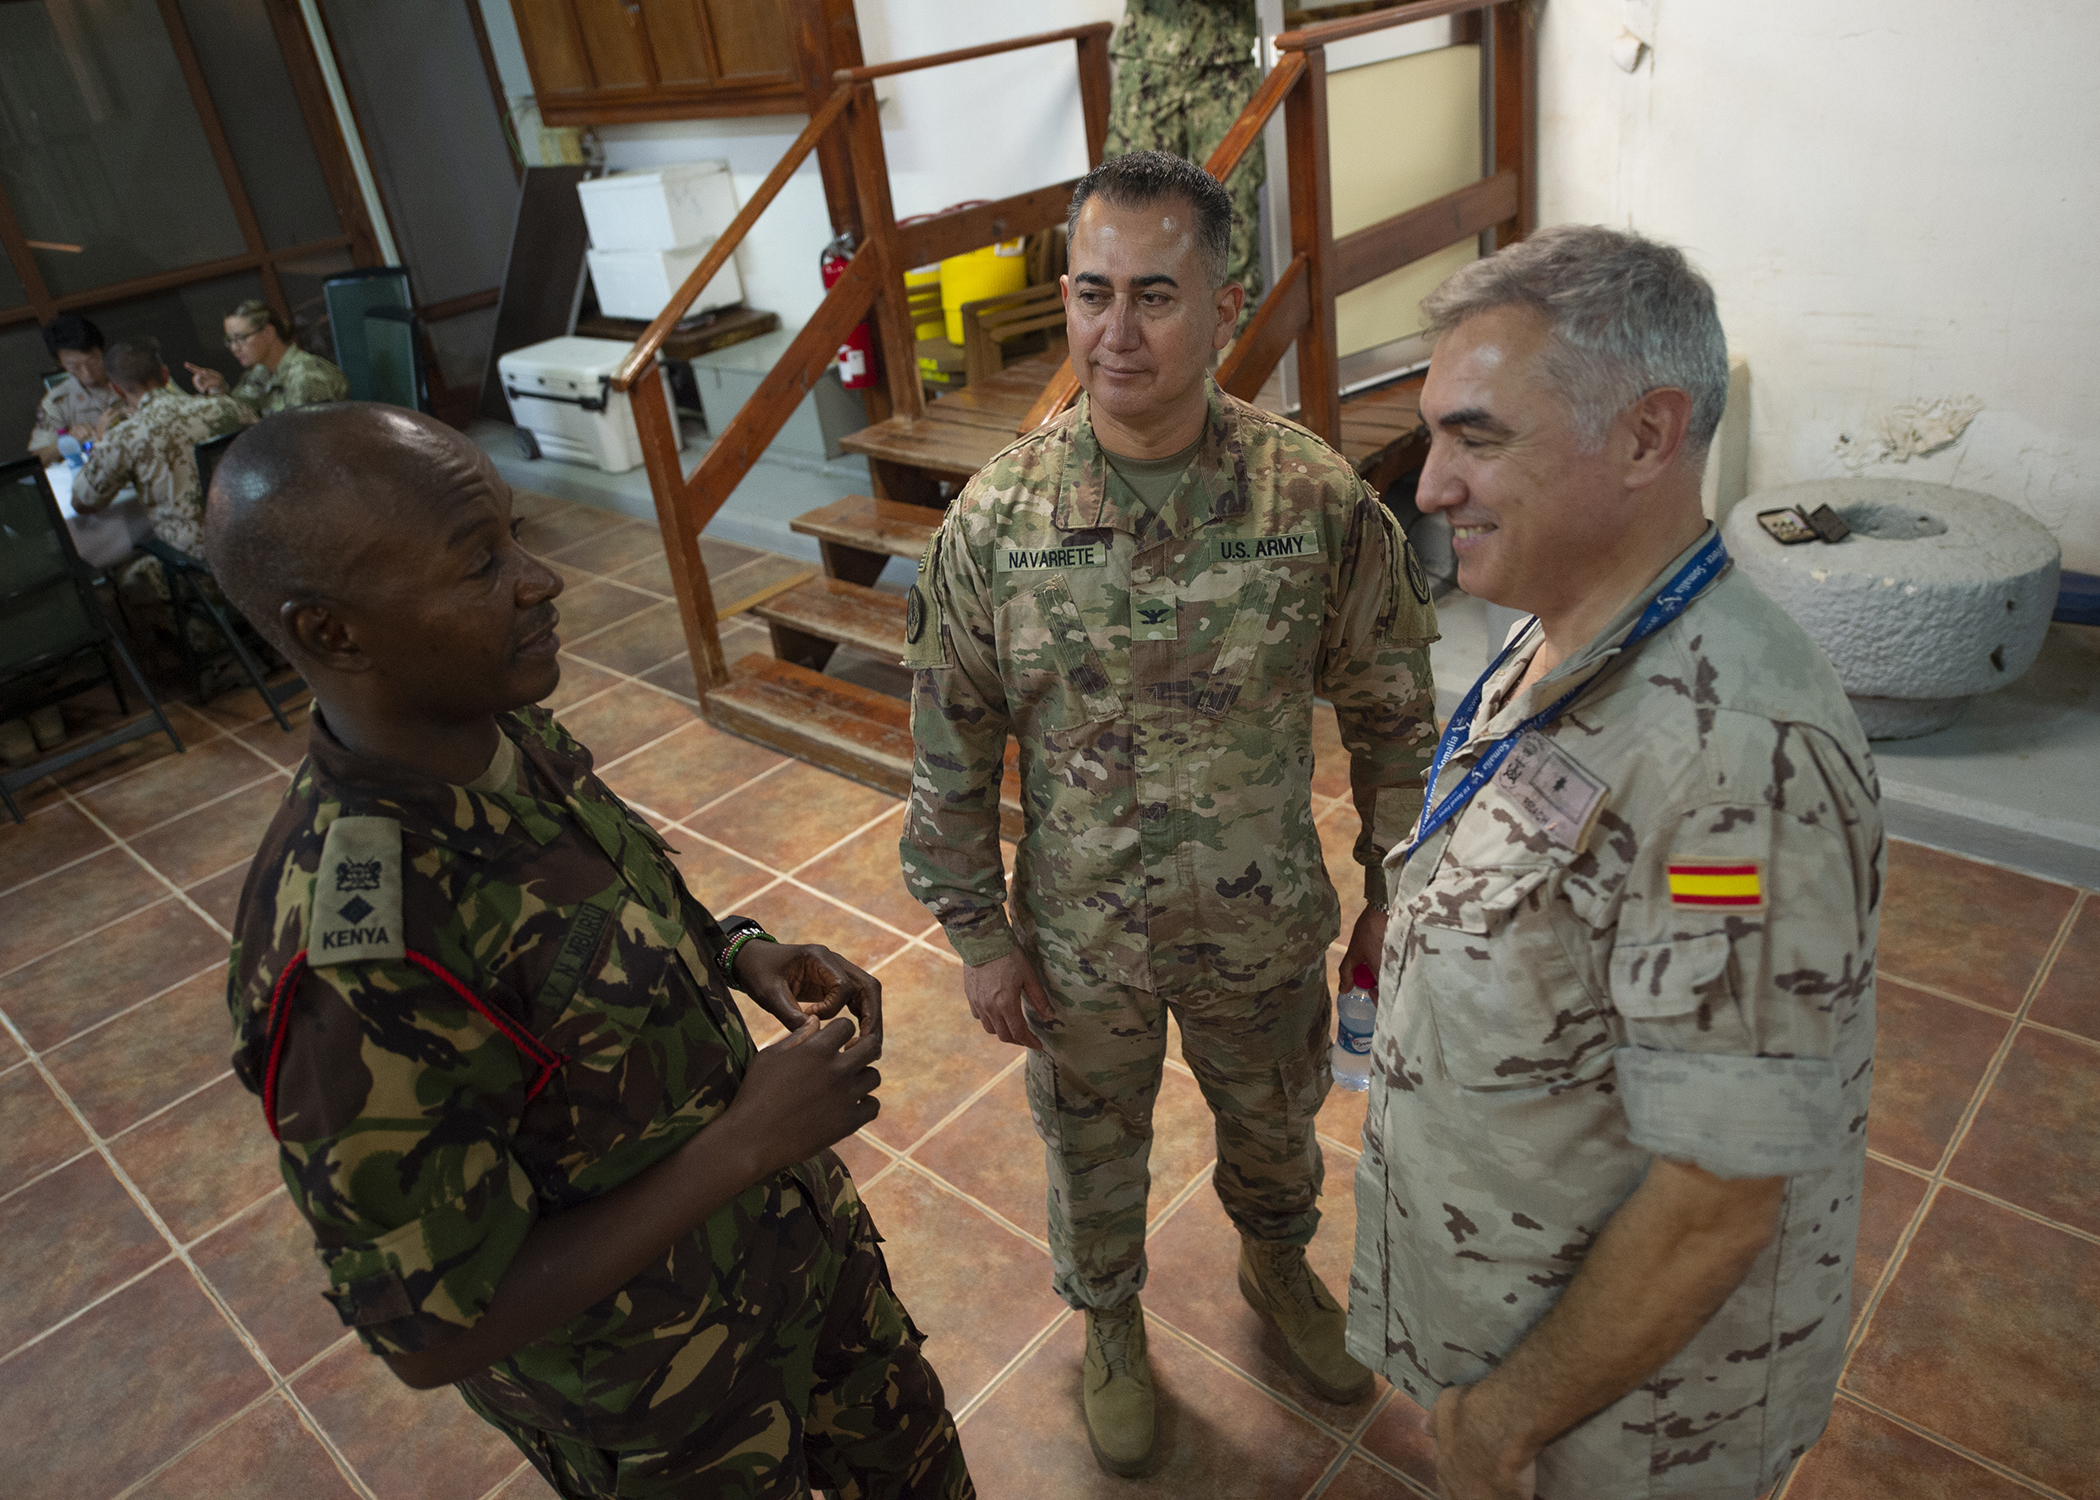 Multinational military partners talk while attending a Combined Joint Task Force-Horn of Africa (CJTF-HOA) cultural exchange event at Camp Lemonnier, Djibouti, March 27, 2019. CJTF-HOA holds monthly exchange events with multinational military partners affiliated with Camp Lemonnier to strengthen alliances and attract new partners in the combined joint military environment. (U.S. Air Force photo by Tech. Sgt. Shawn Nickel)